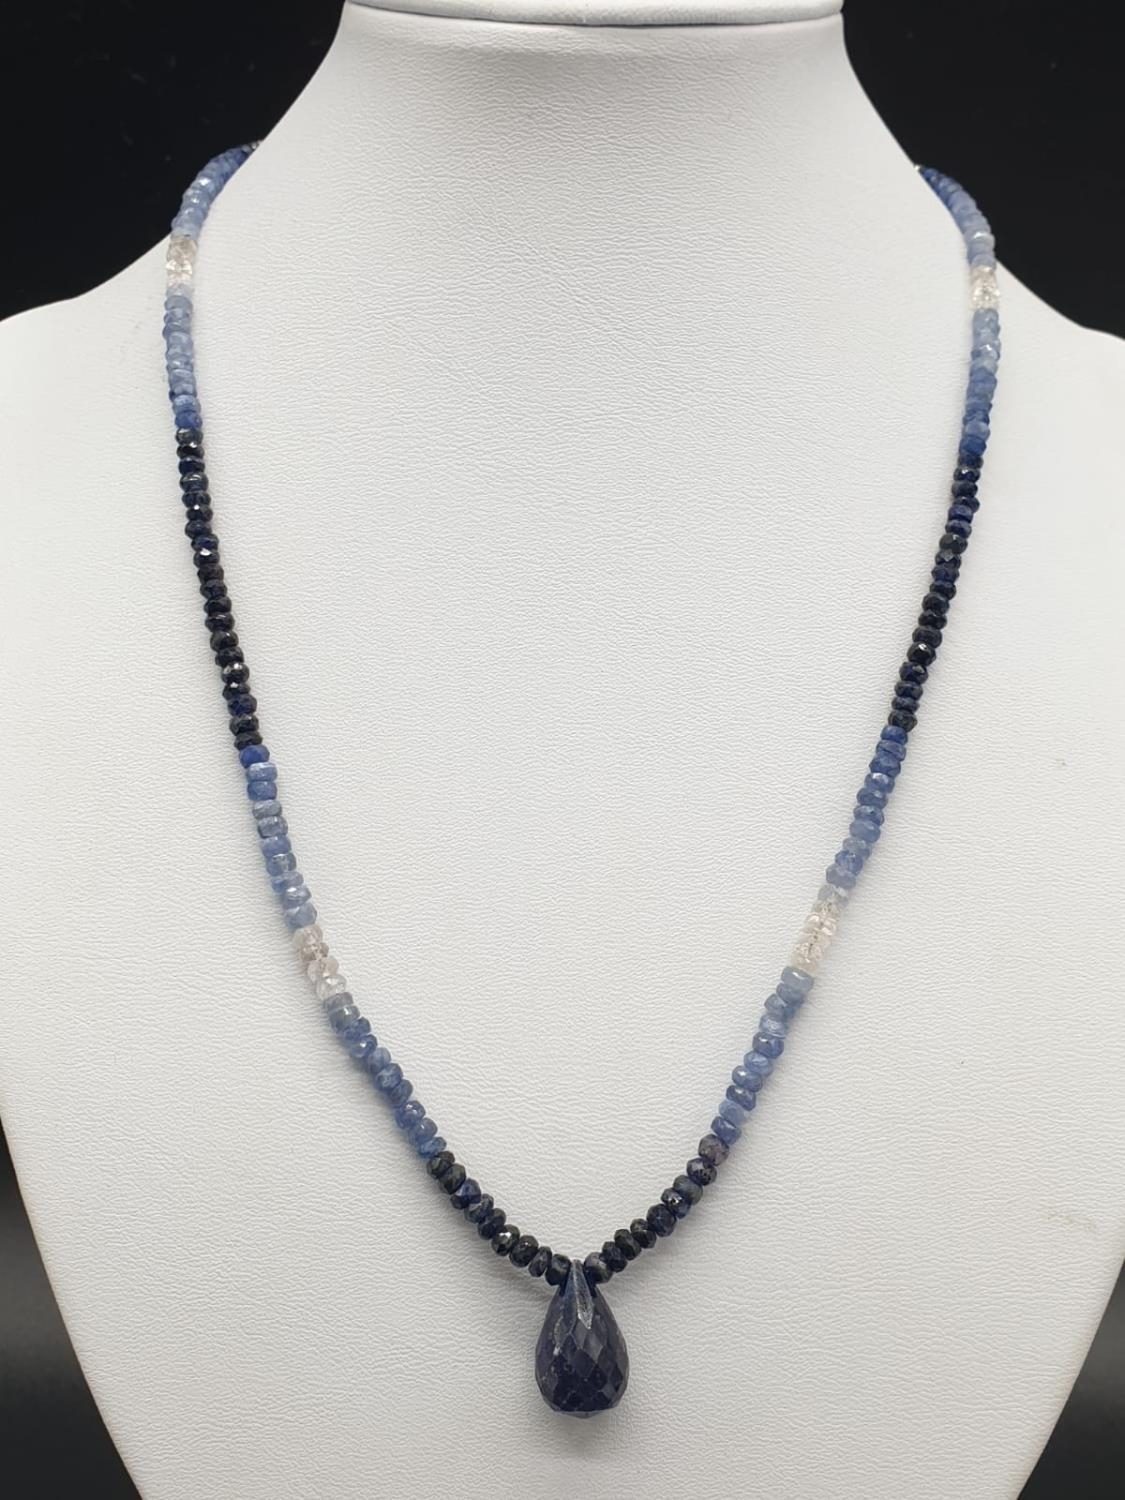 A shaded Blue sapphire Necklace with a sapphire drop and matching dangler earrings. Necklace - Image 2 of 6